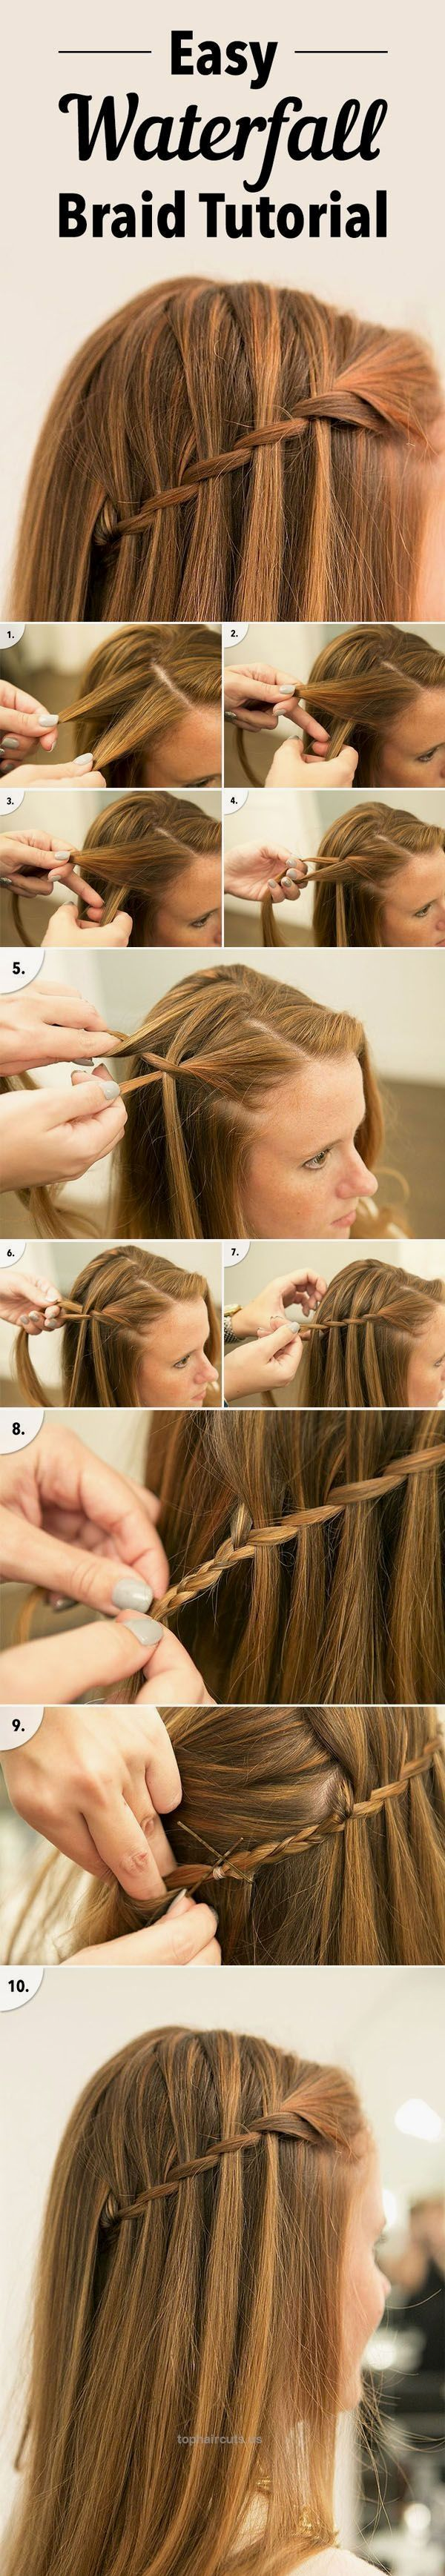 #hairstyle ideas #ponytail hairstyles #braids hairstyle #hairstyle for short hai…  #hairstyle ideas #ponytail hairstyles #braids hairstyle #hairstyle for short hair #longhair hairstyles #wavy hairstyle #hairstyle tutorial #hairst ..  http://www.tophaircuts.us/2017/11/24/hairstyle-ideas-ponytail-hairstyles-braids-hairstyle-hairstyle-for-short-hai/